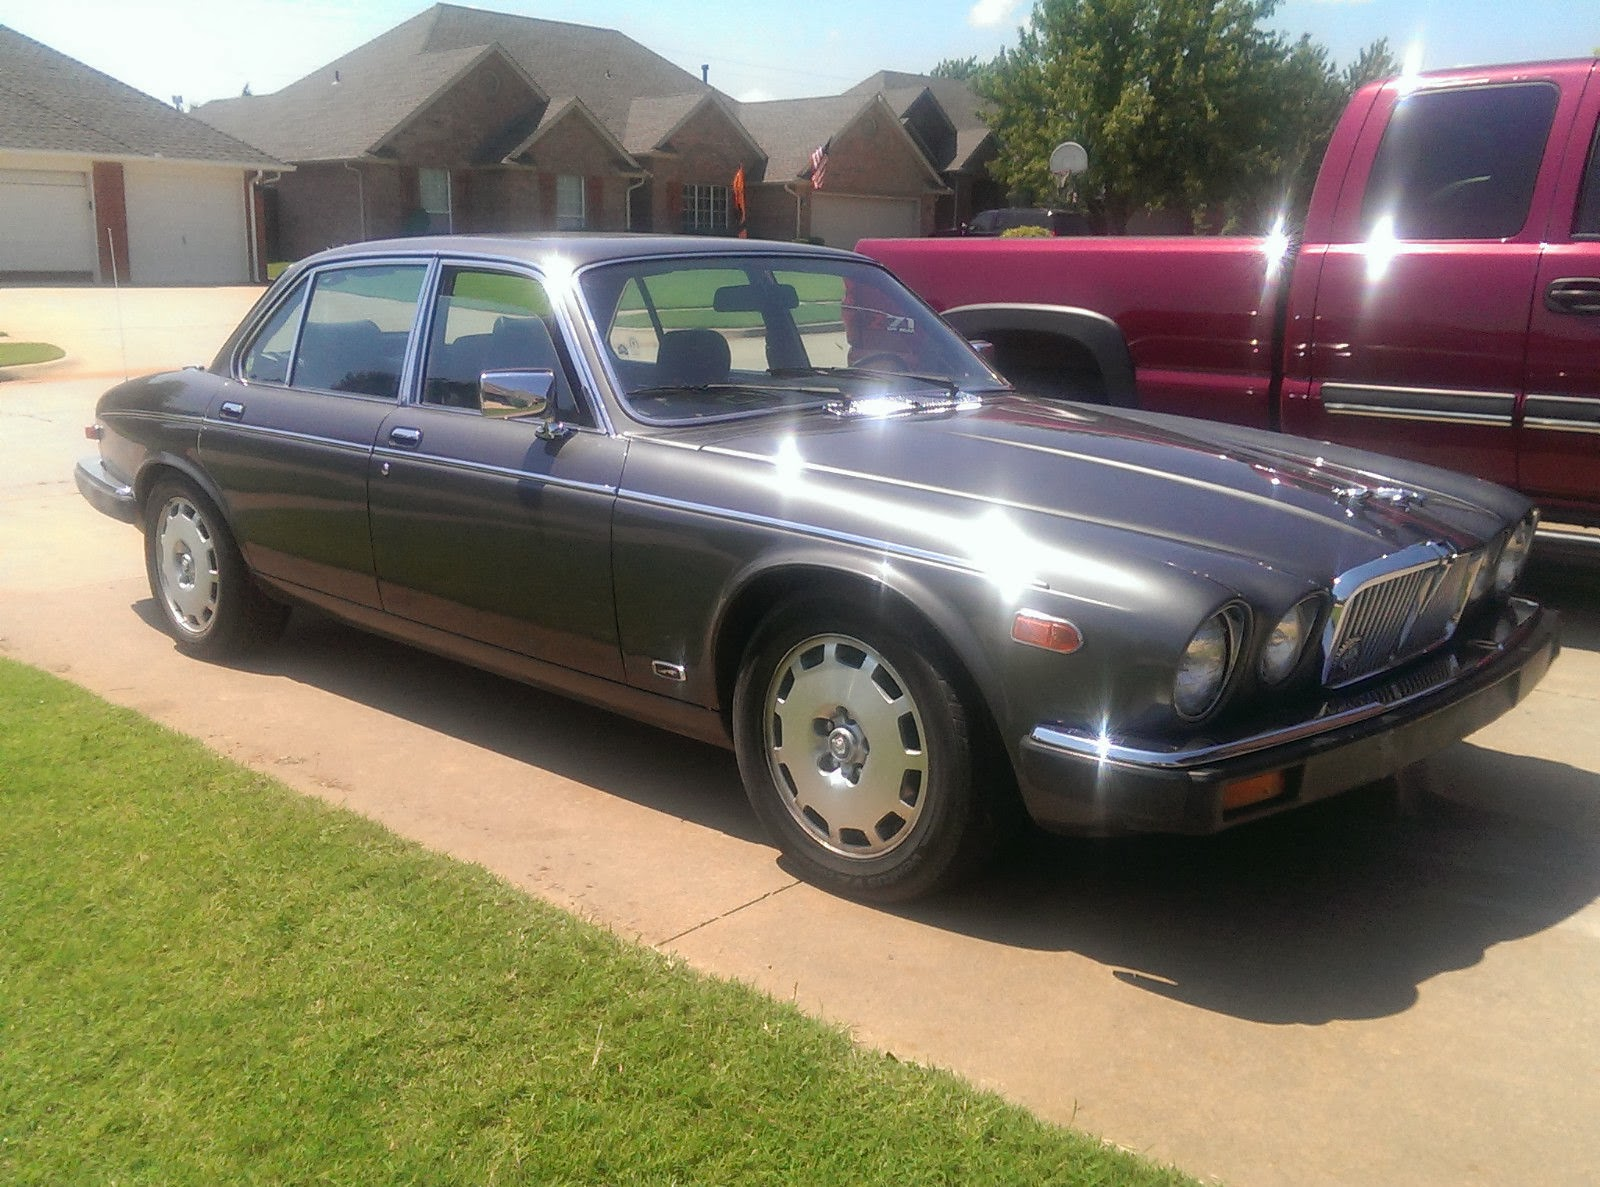 Marvelous Daily Turismo: 2k: Luxury And Reliability: 1985 Jaguar XJ Vanden Plas,  Chevy V8